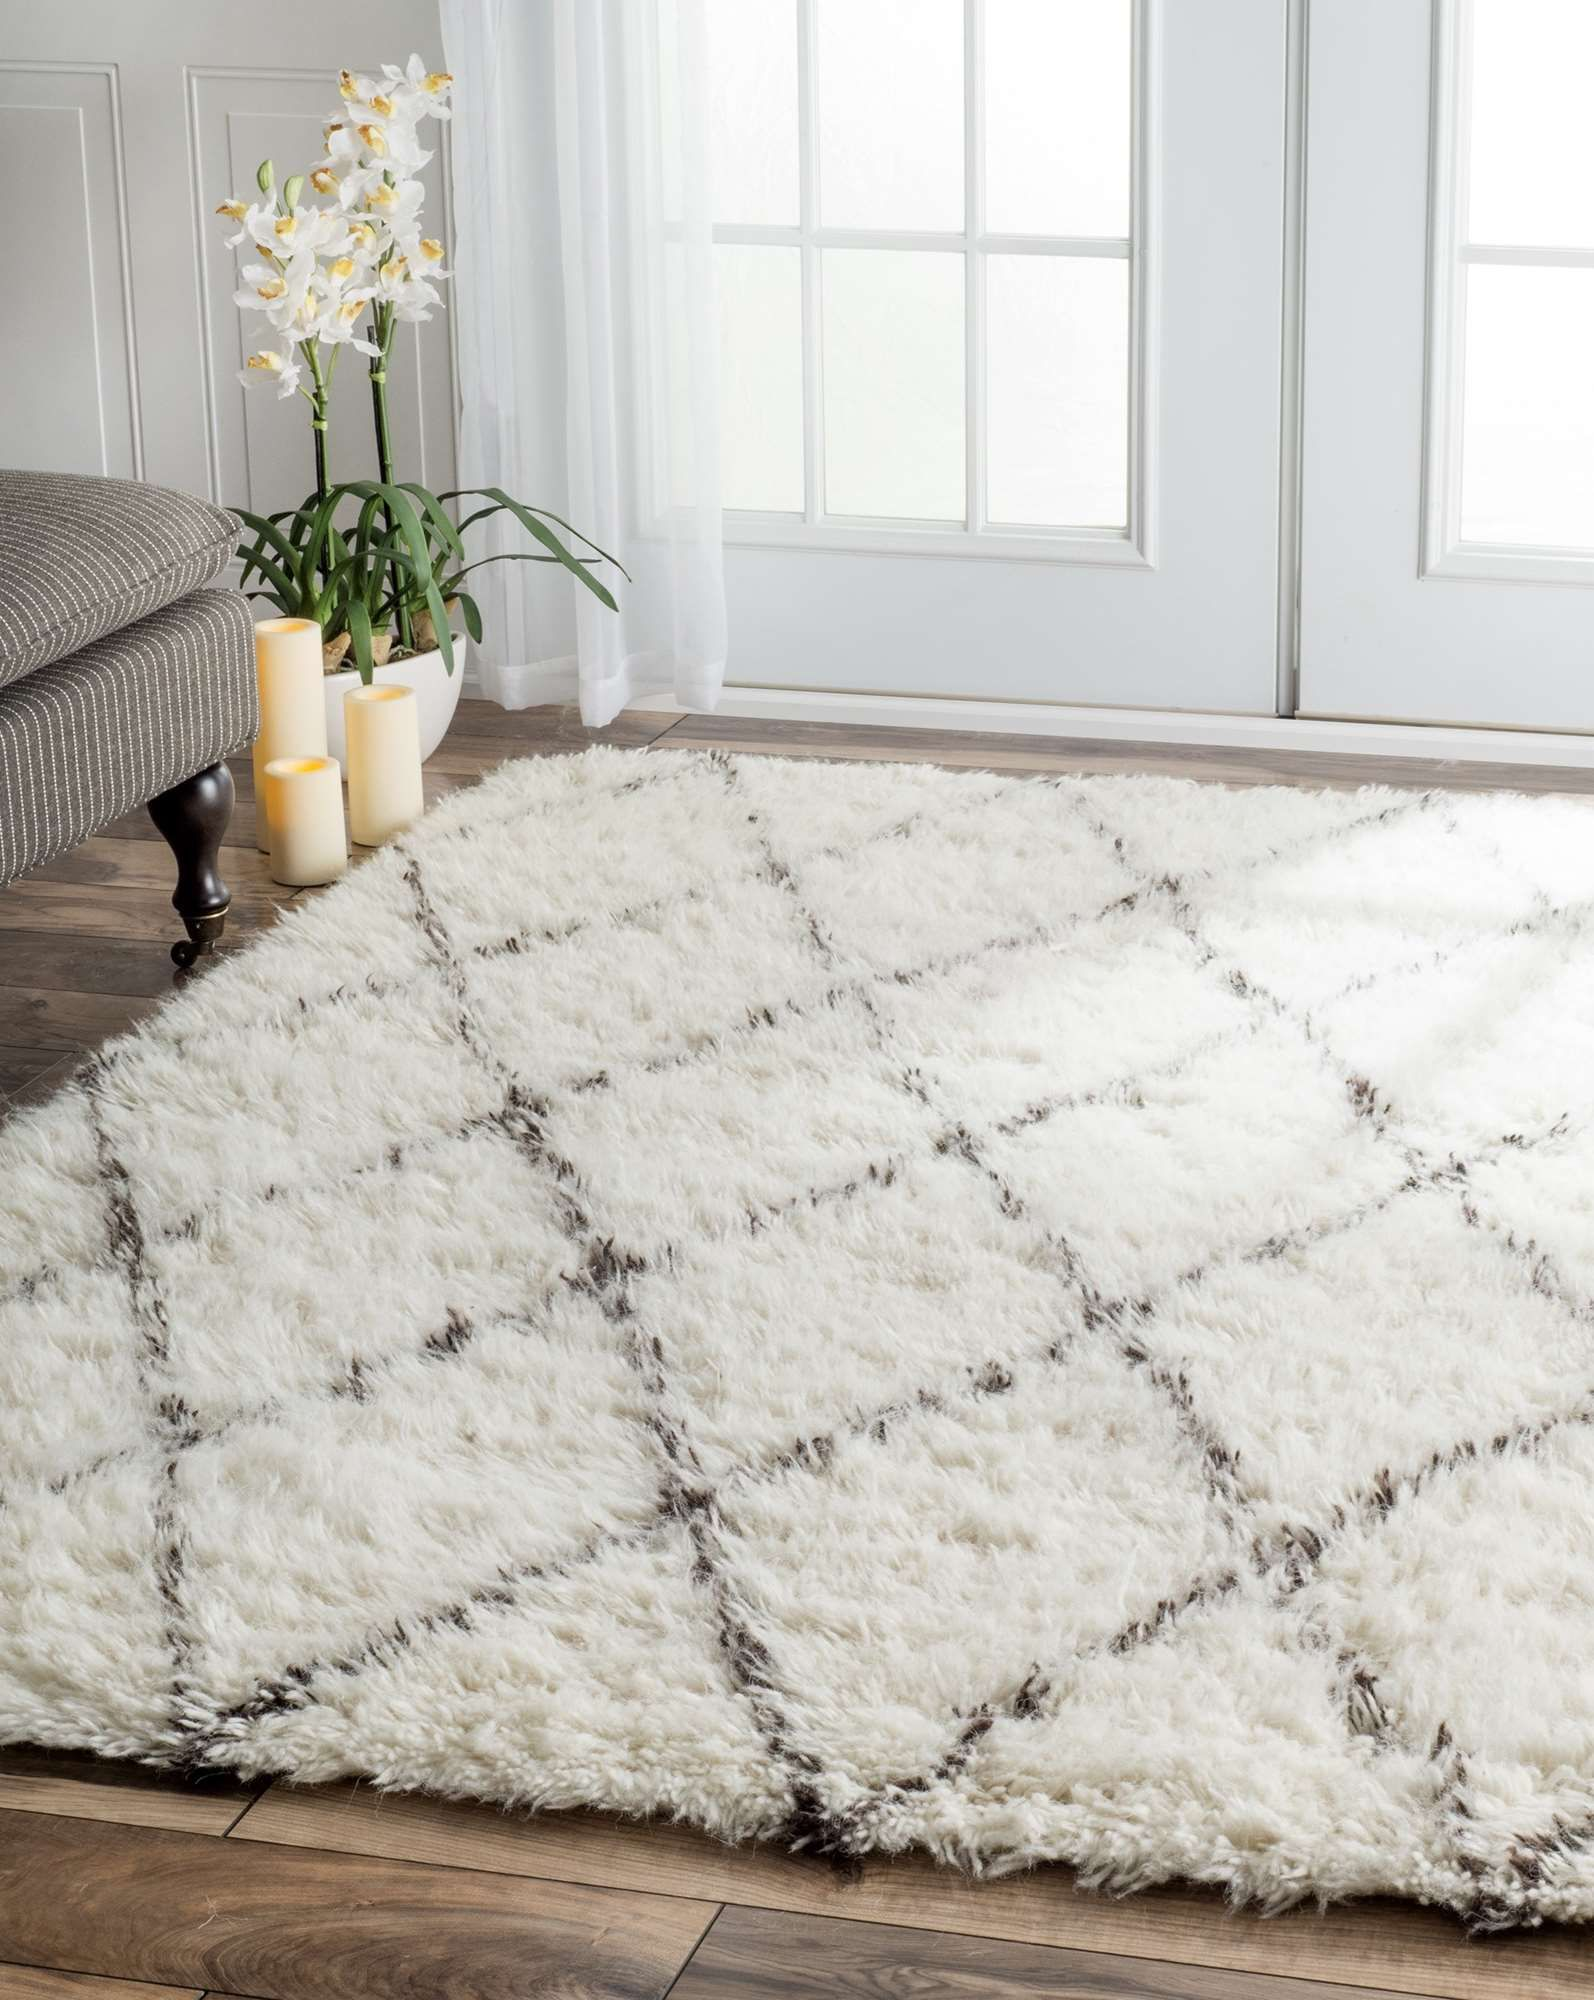 Bring Home The Very Plush And Ultra Soft Handmade Rug Create A Cozy E For Yourself Made Out Of 100 Wool This Will Turn To Be An